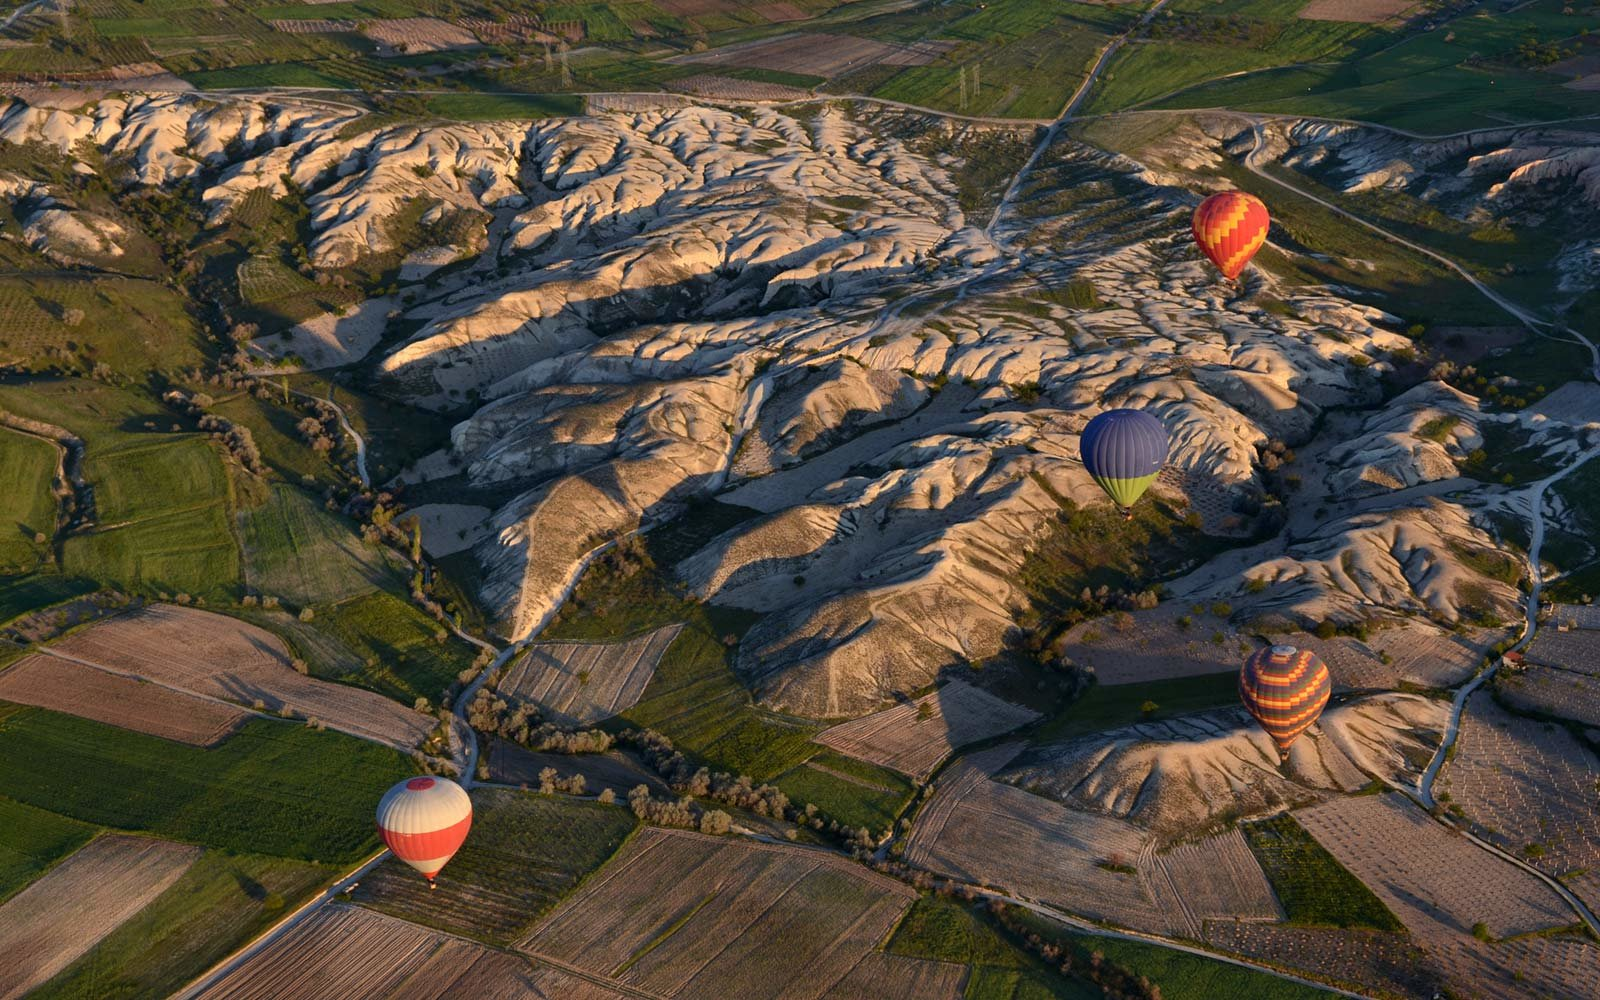 Hot Air Balloons, Cappadocian Badlands, Turkey